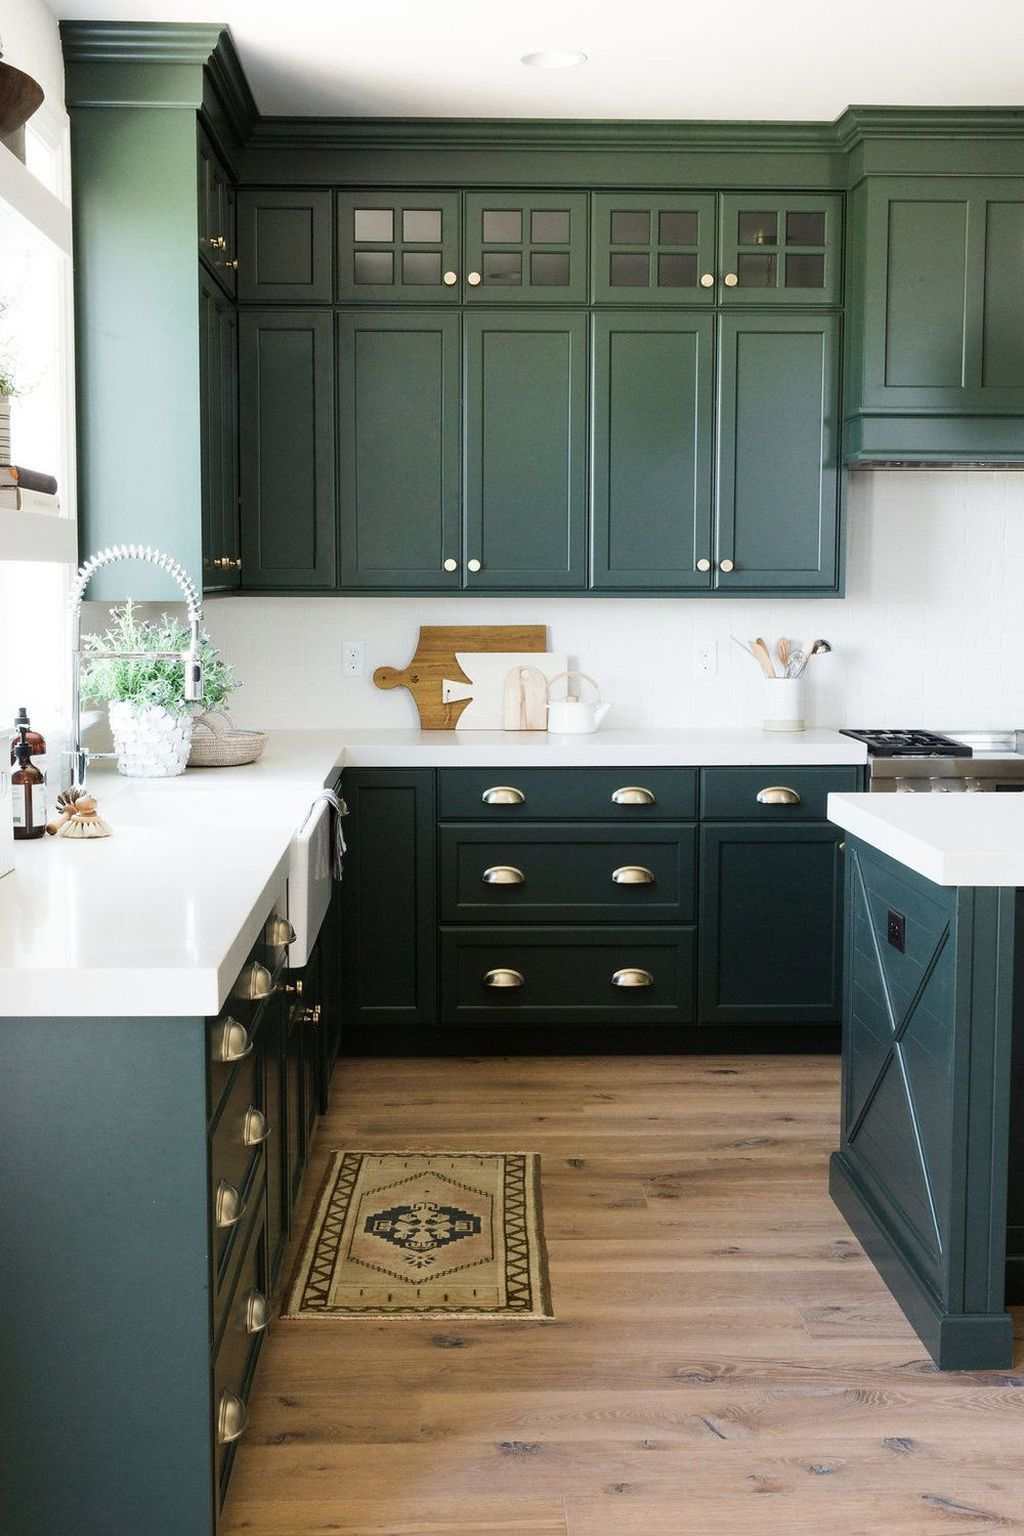 30 White And Navy Kitchen Features Inspiration Crompton News Kitchen Cabinet Inspiration Green Kitchen Cabinets Dark Green Kitchen